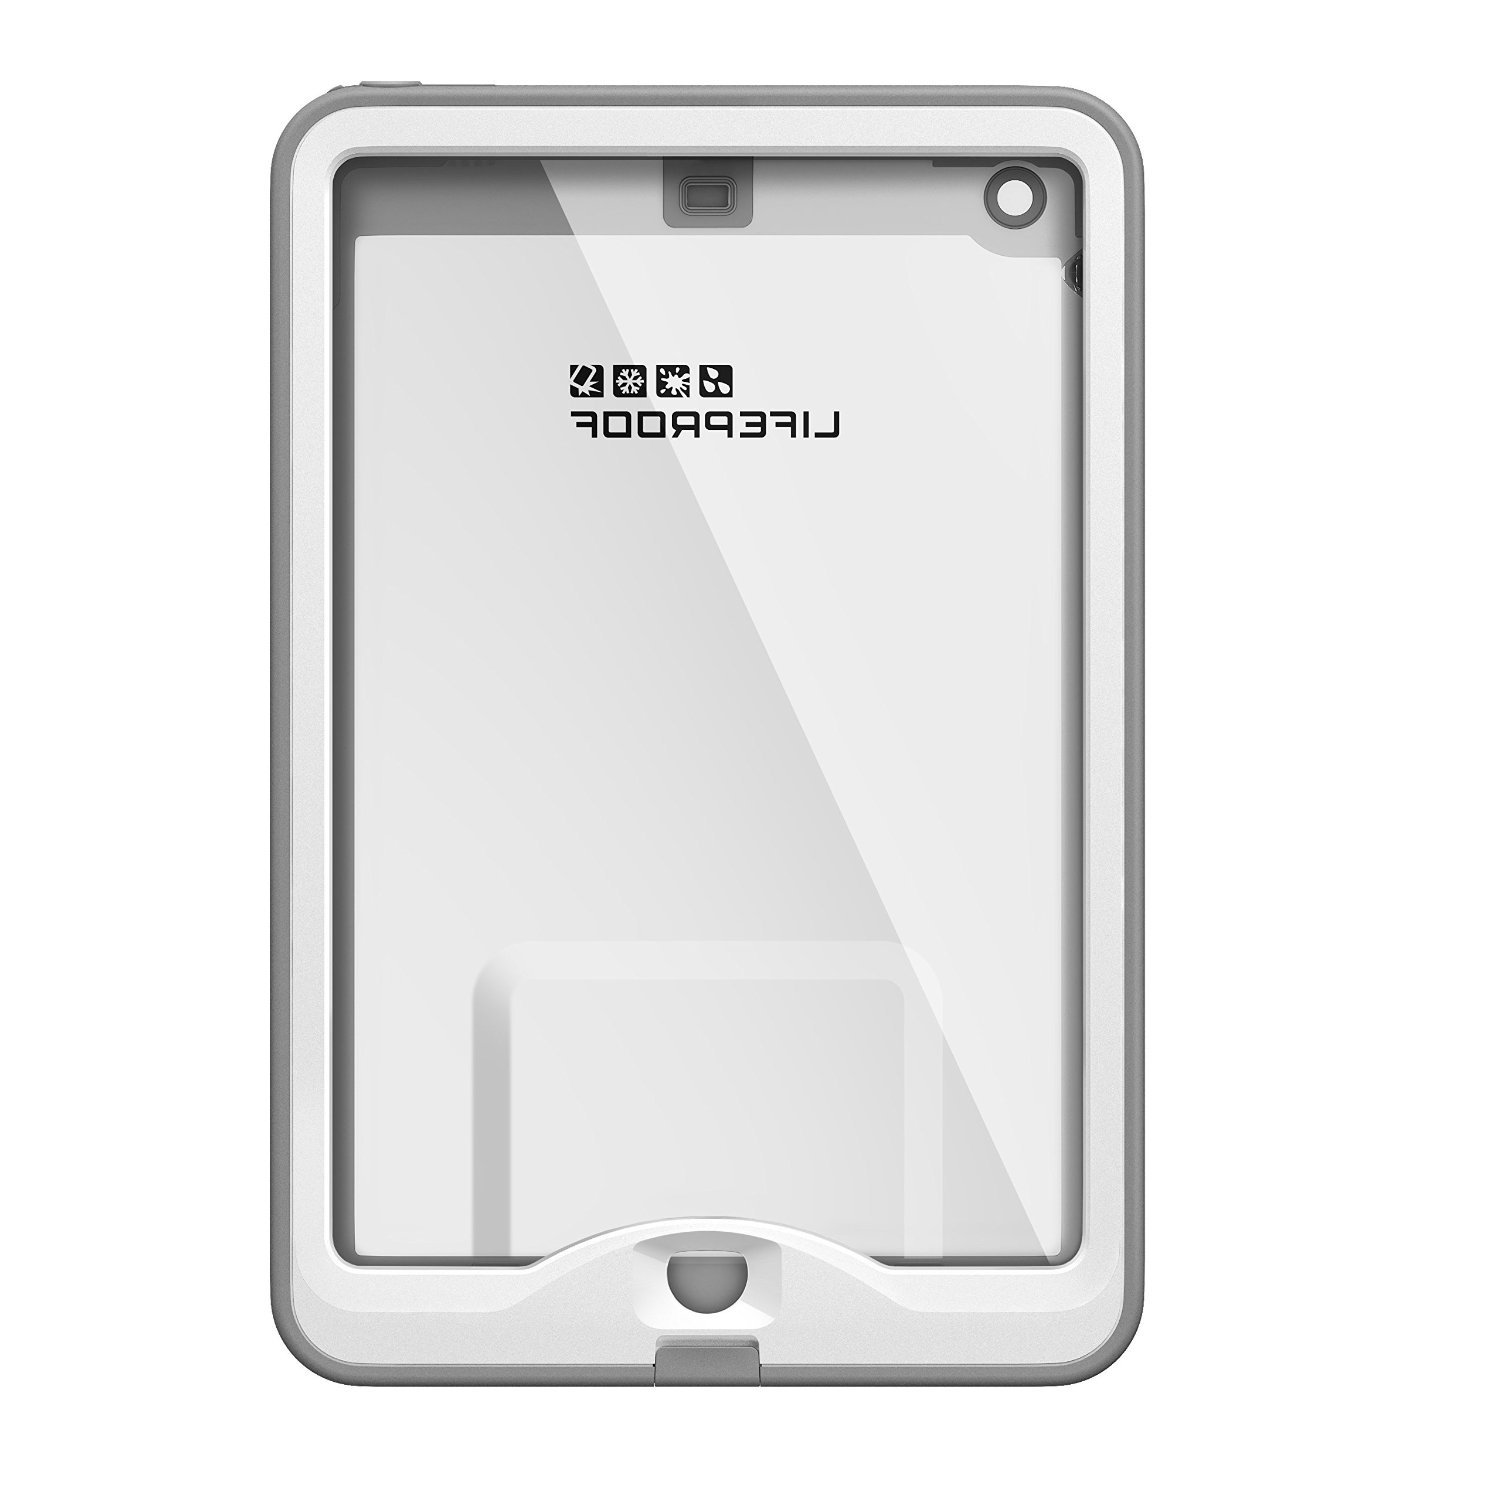 Lifeproof Fre Nuud Waterproof Case For Ipad Mini 1 2 3 Avalanche Apple Air